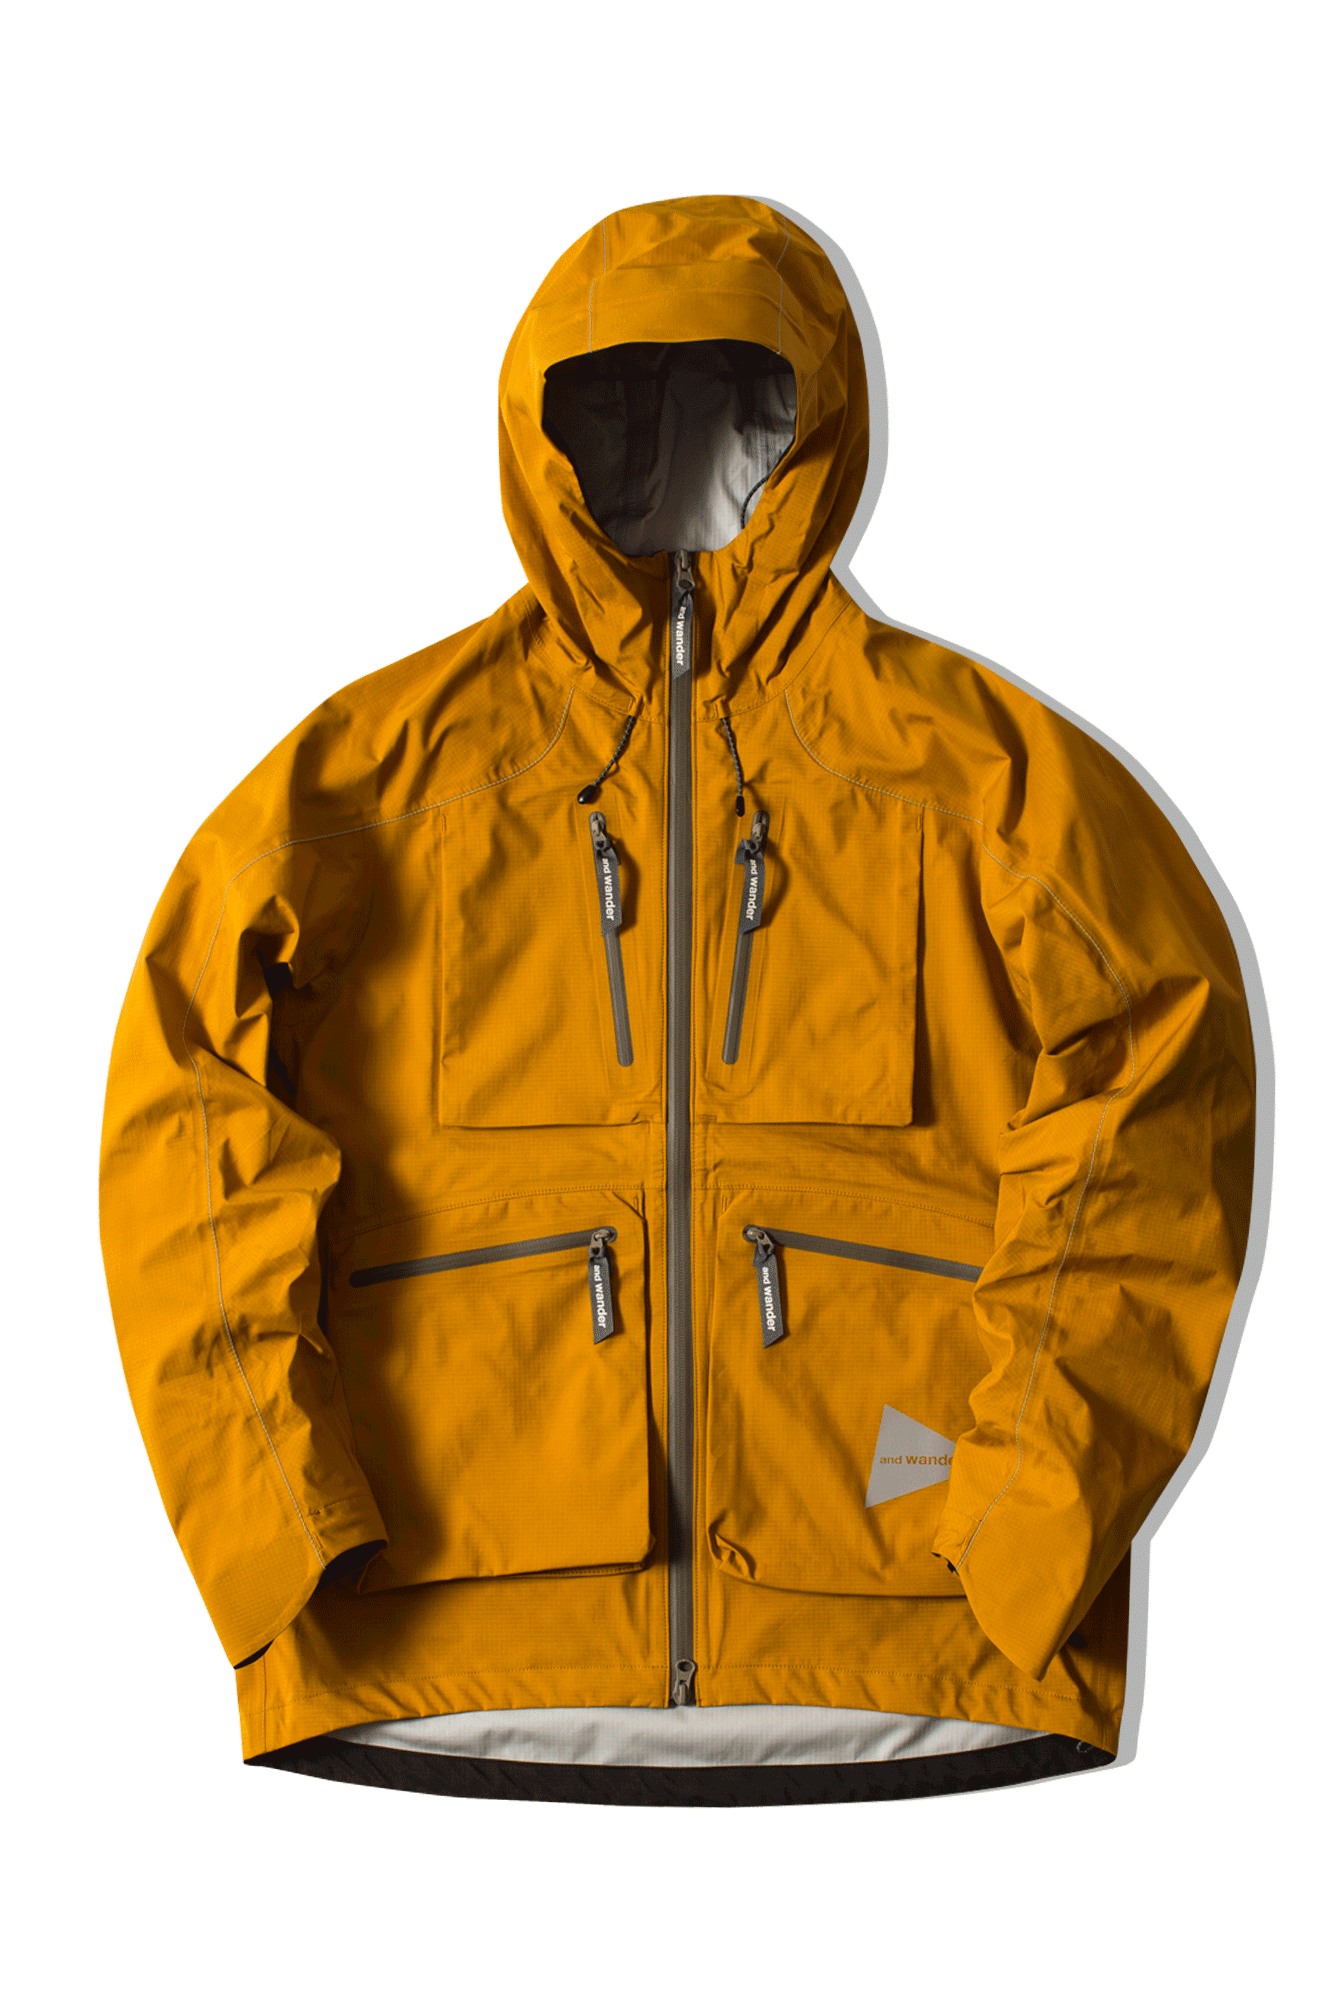 And Wander Coats & Jackets E Vent Pocket Rain Jkt Yellow AW91-FT001#000#YLW#0 - One Block Down